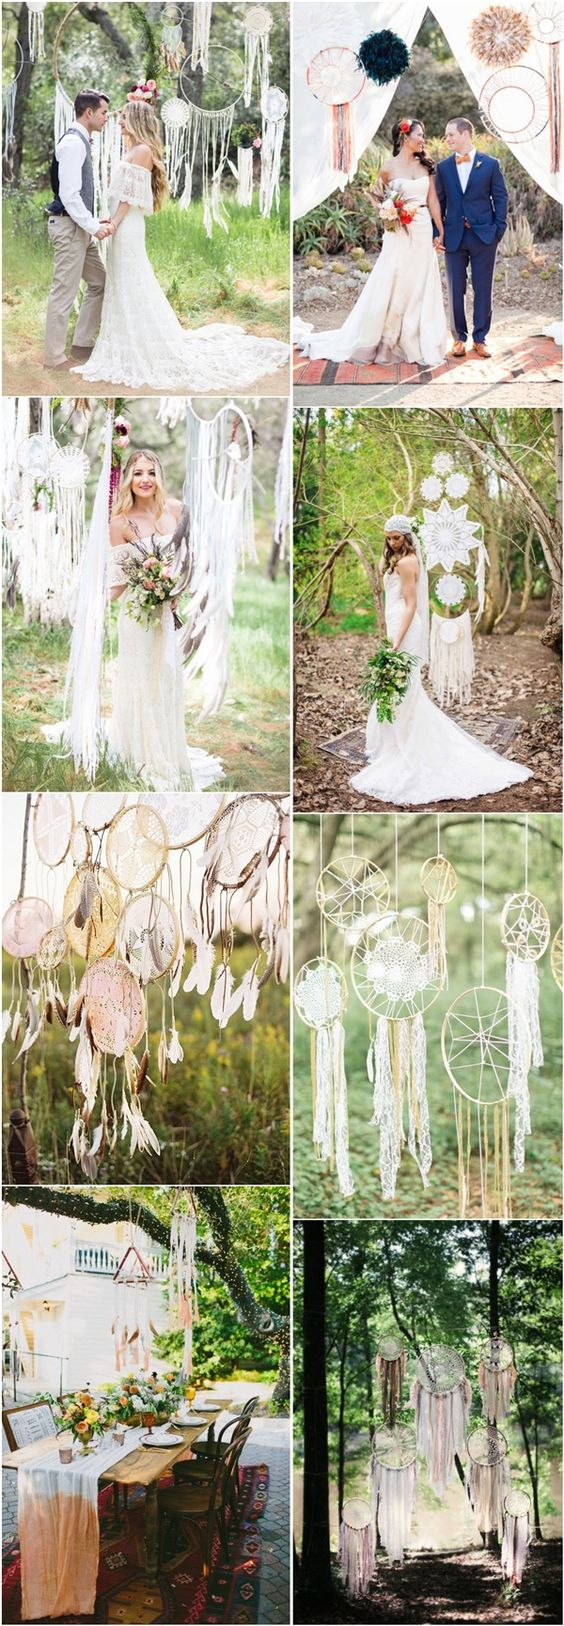 boho wedding ideas- bohemian dreamcatcthers wedding decor ideas